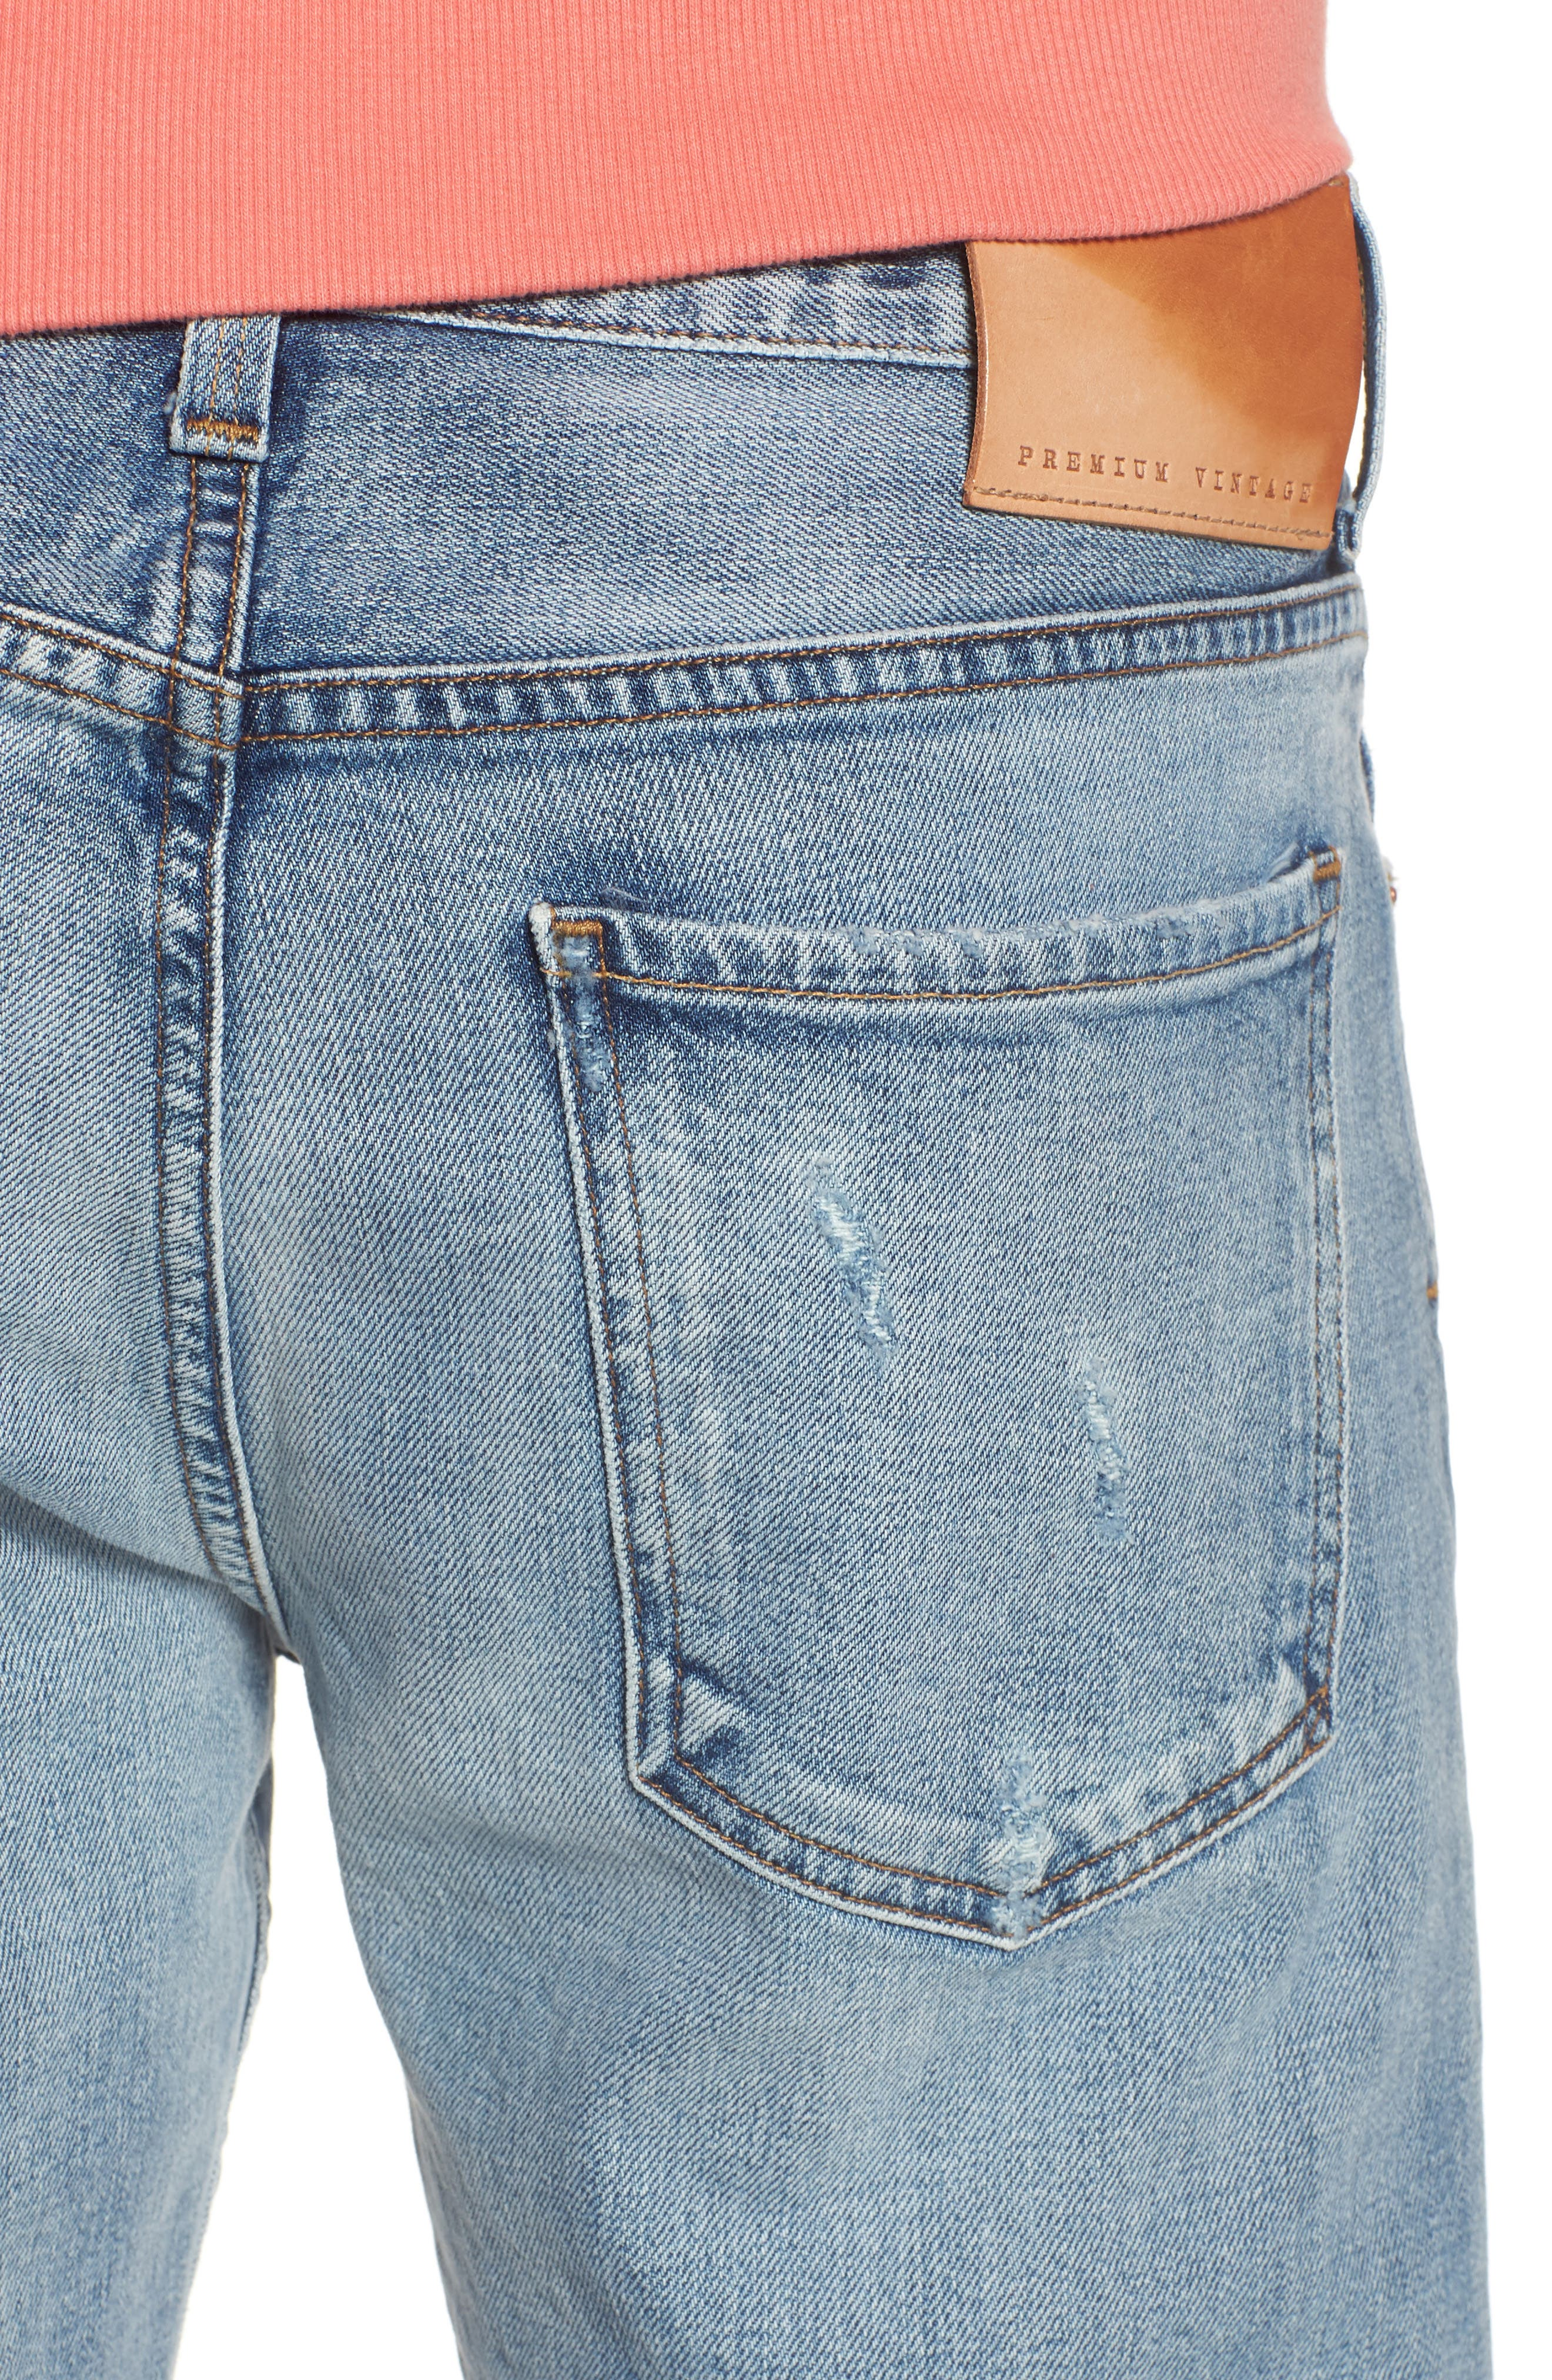 Bowery Slim Fit Jeans,                             Alternate thumbnail 4, color,                             Lone Pine